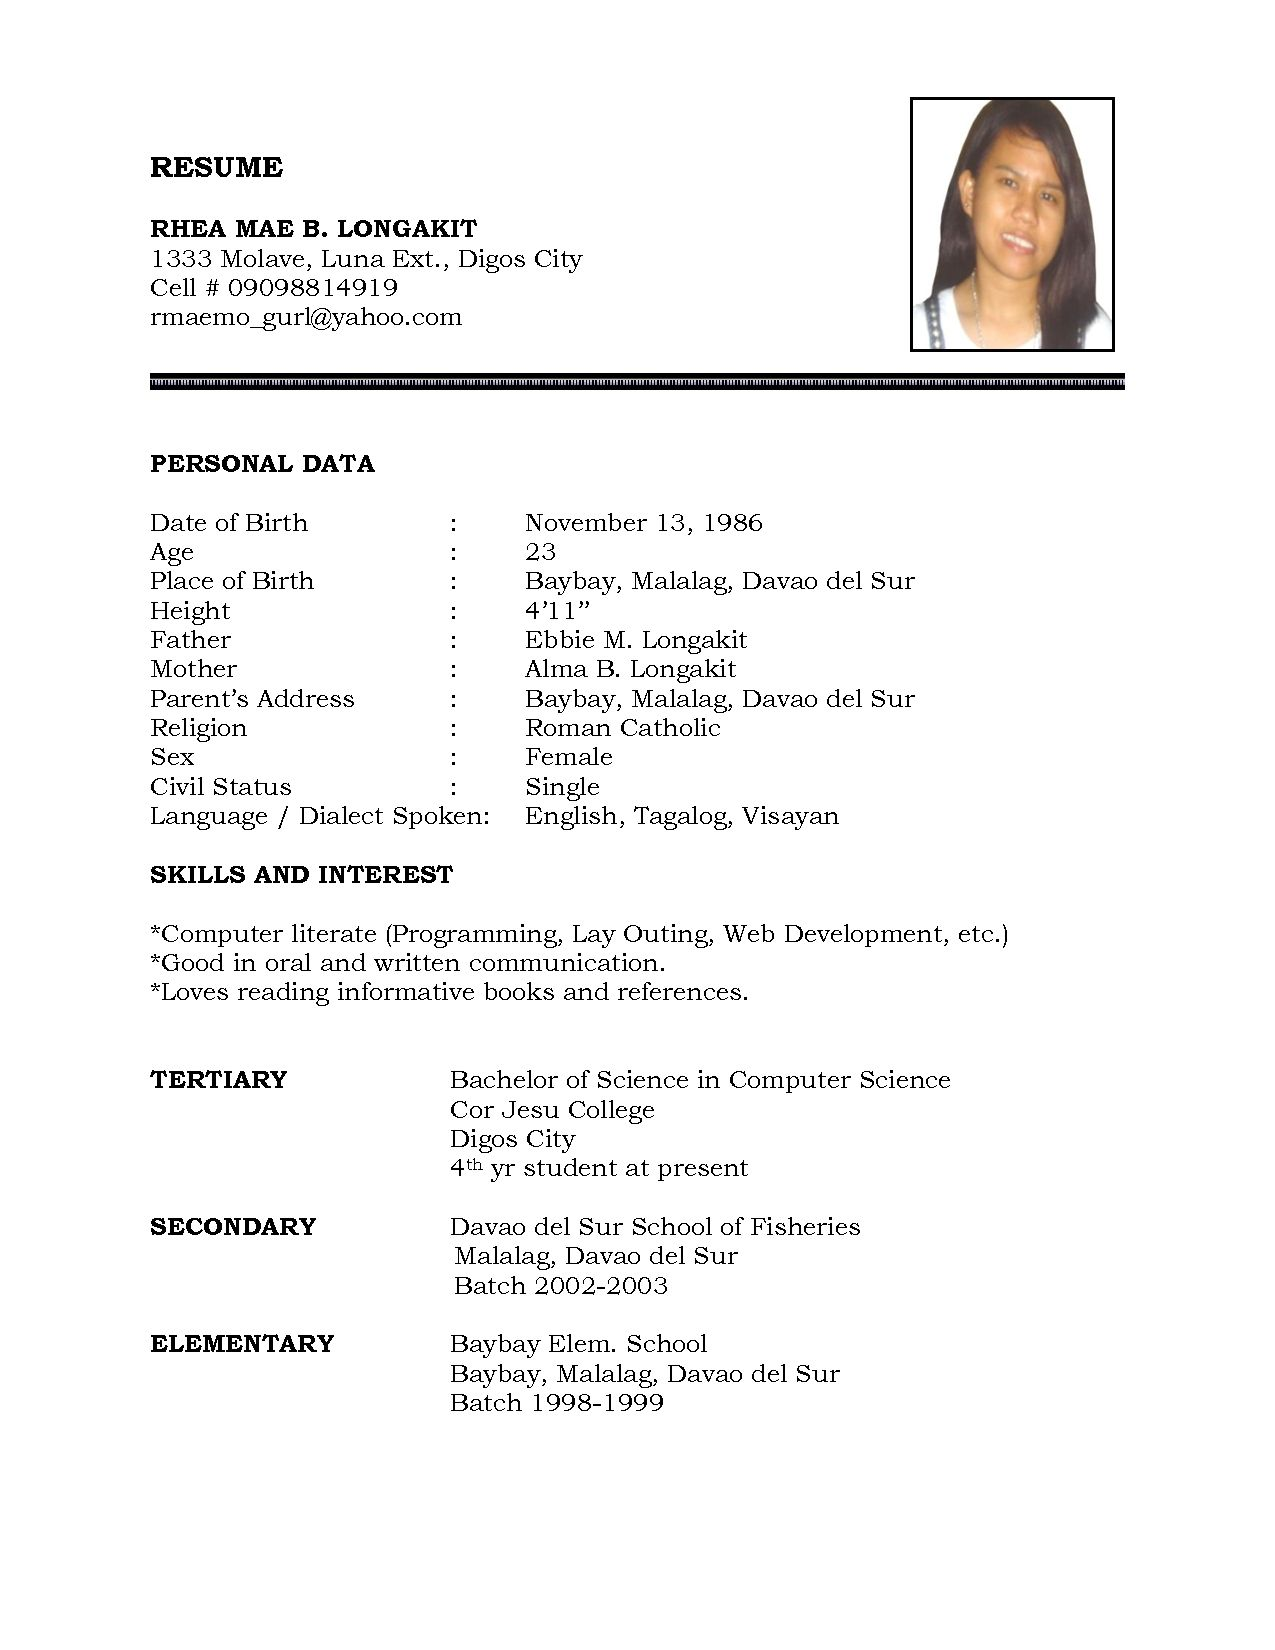 download free blank resume form template printable biodata billing specialist industrial engineer cv sample patient care technician objective